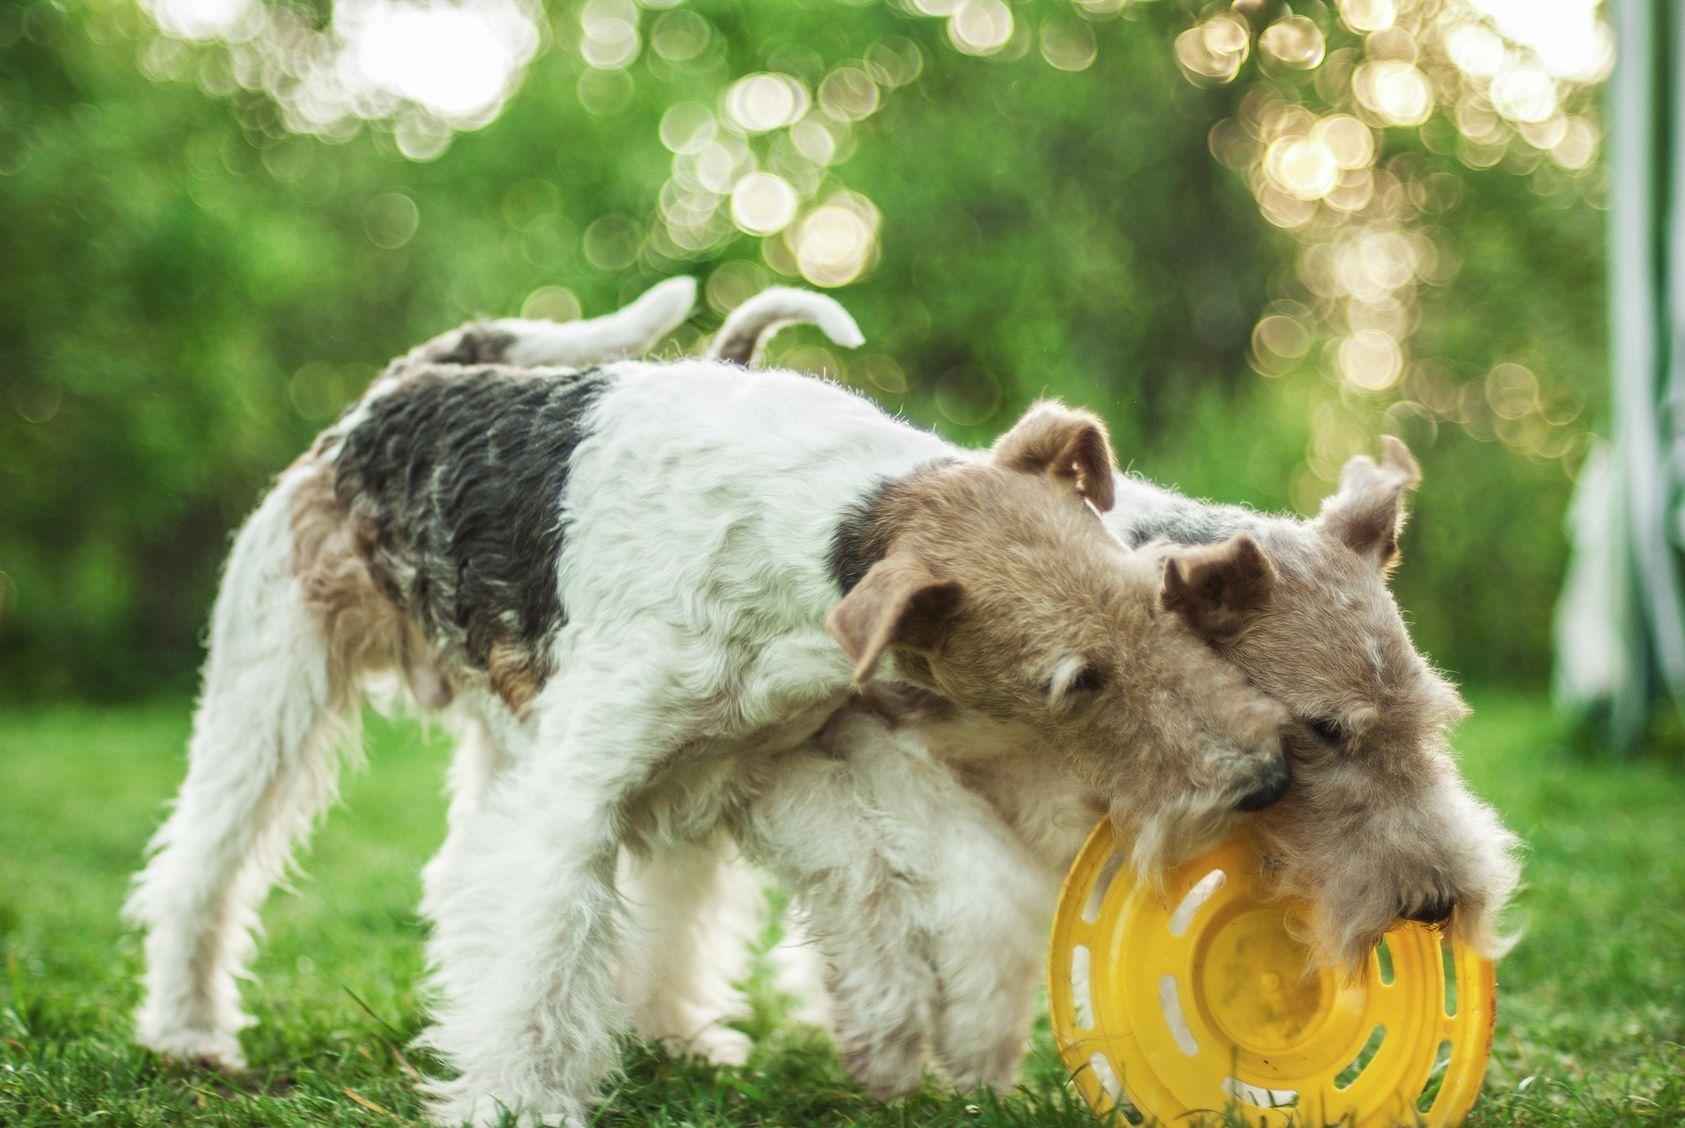 Two dog breeds Fox-Terrier play with plate on green lawn.